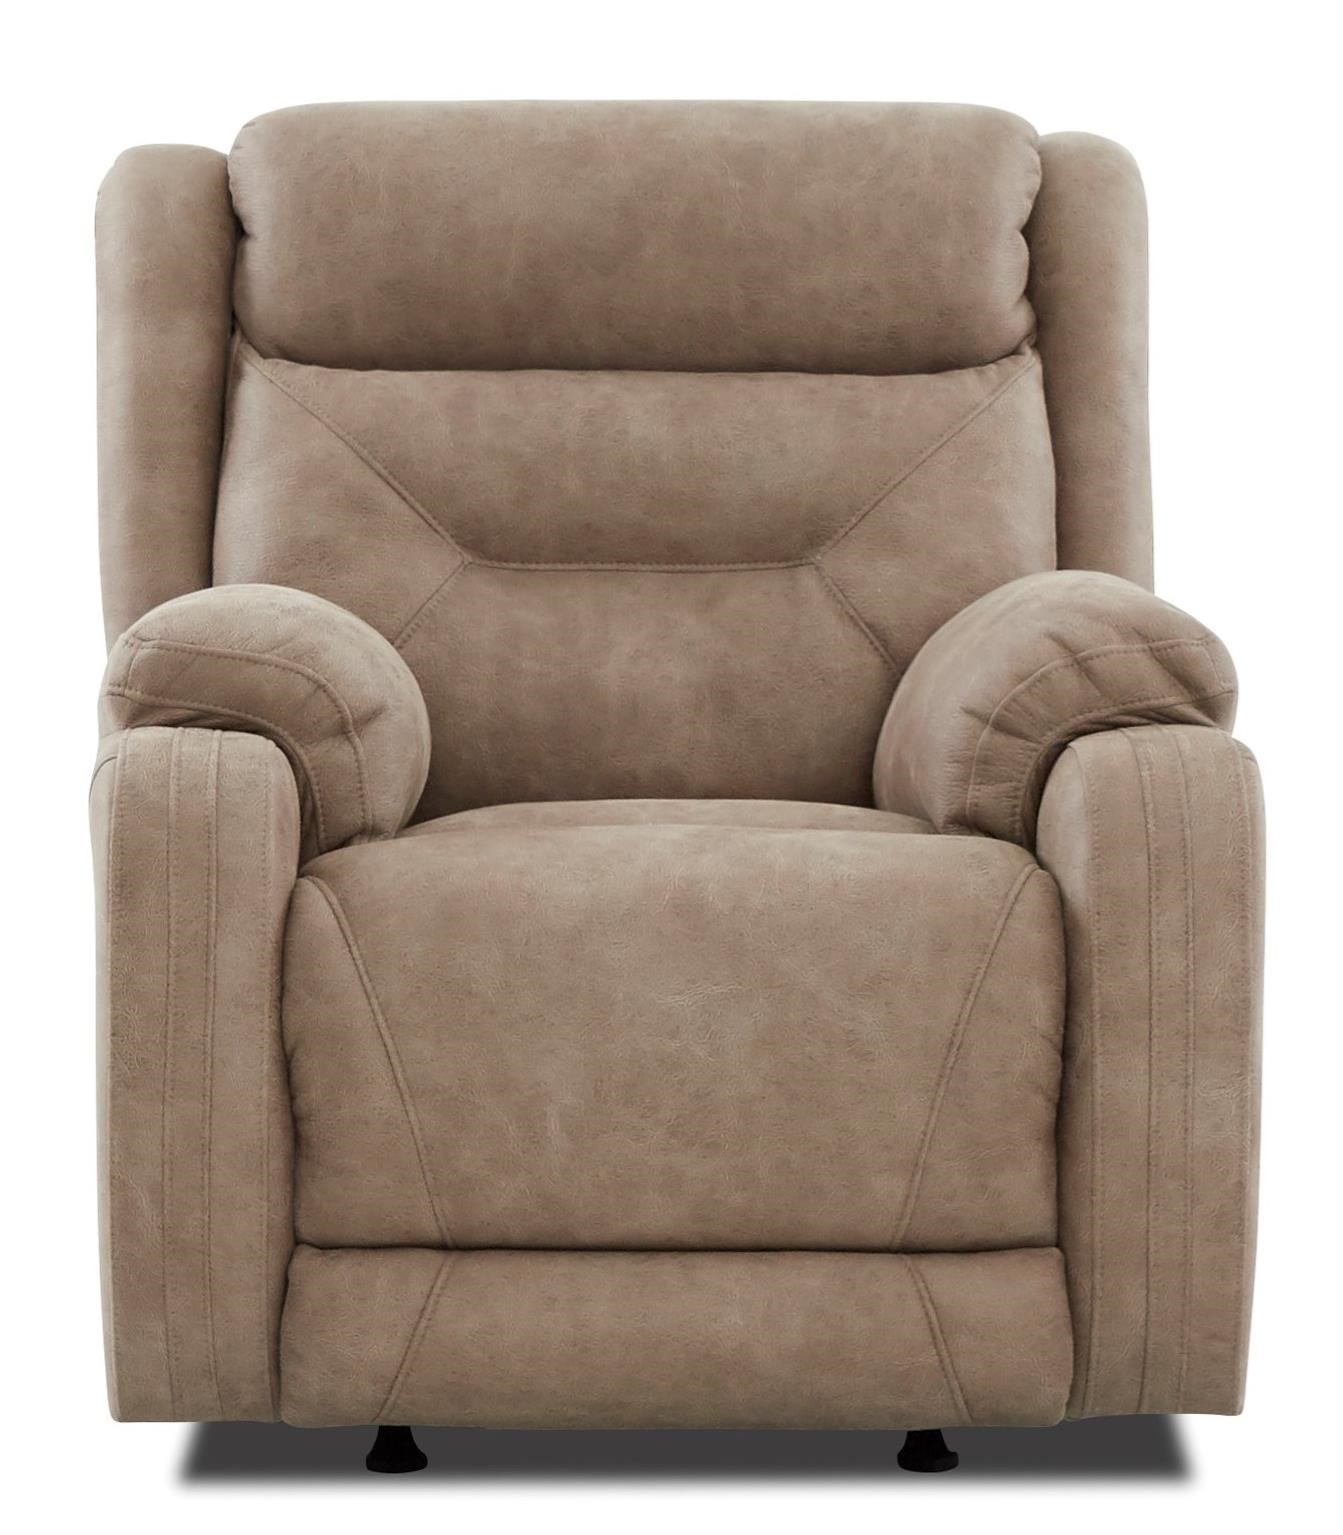 Casual Power Reclining Chair with Extra Long Legrest and USB Port